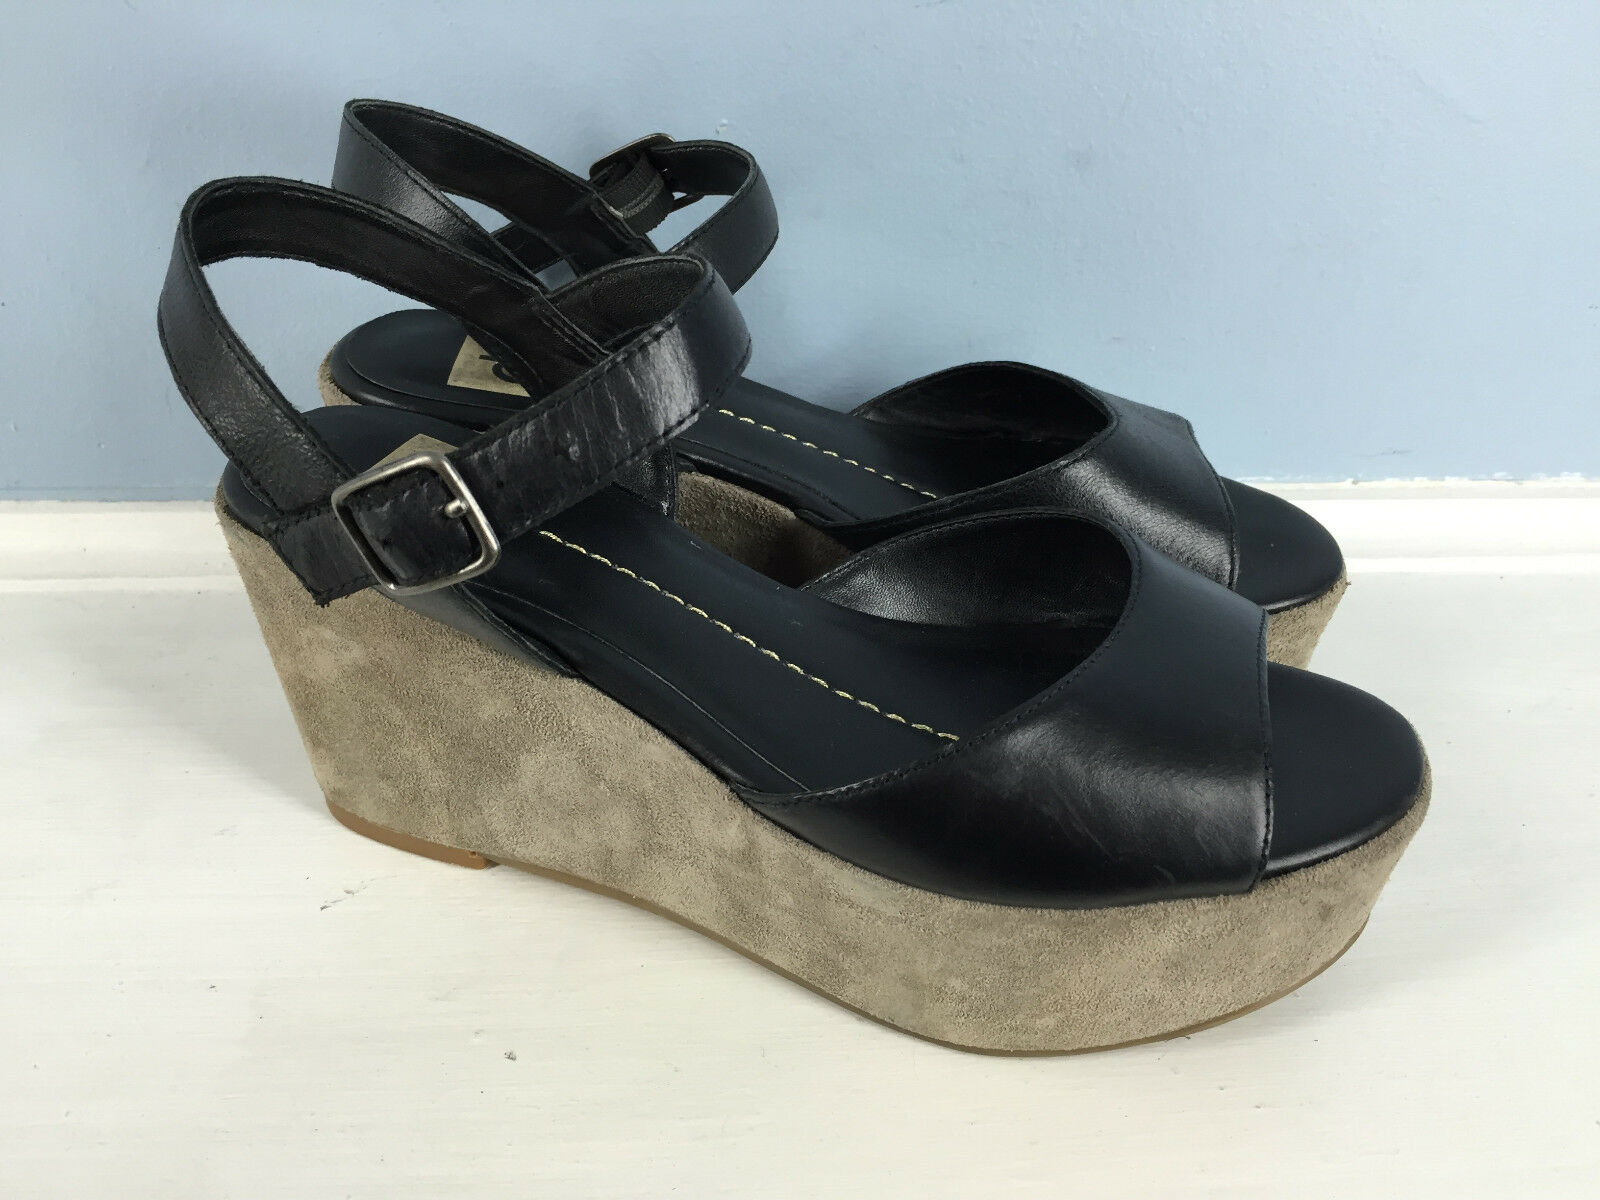 Anthropologie Black DV Black Anthropologie leather gray platform wedge sandal heel Dolce Vita EUC 7 aa71d1